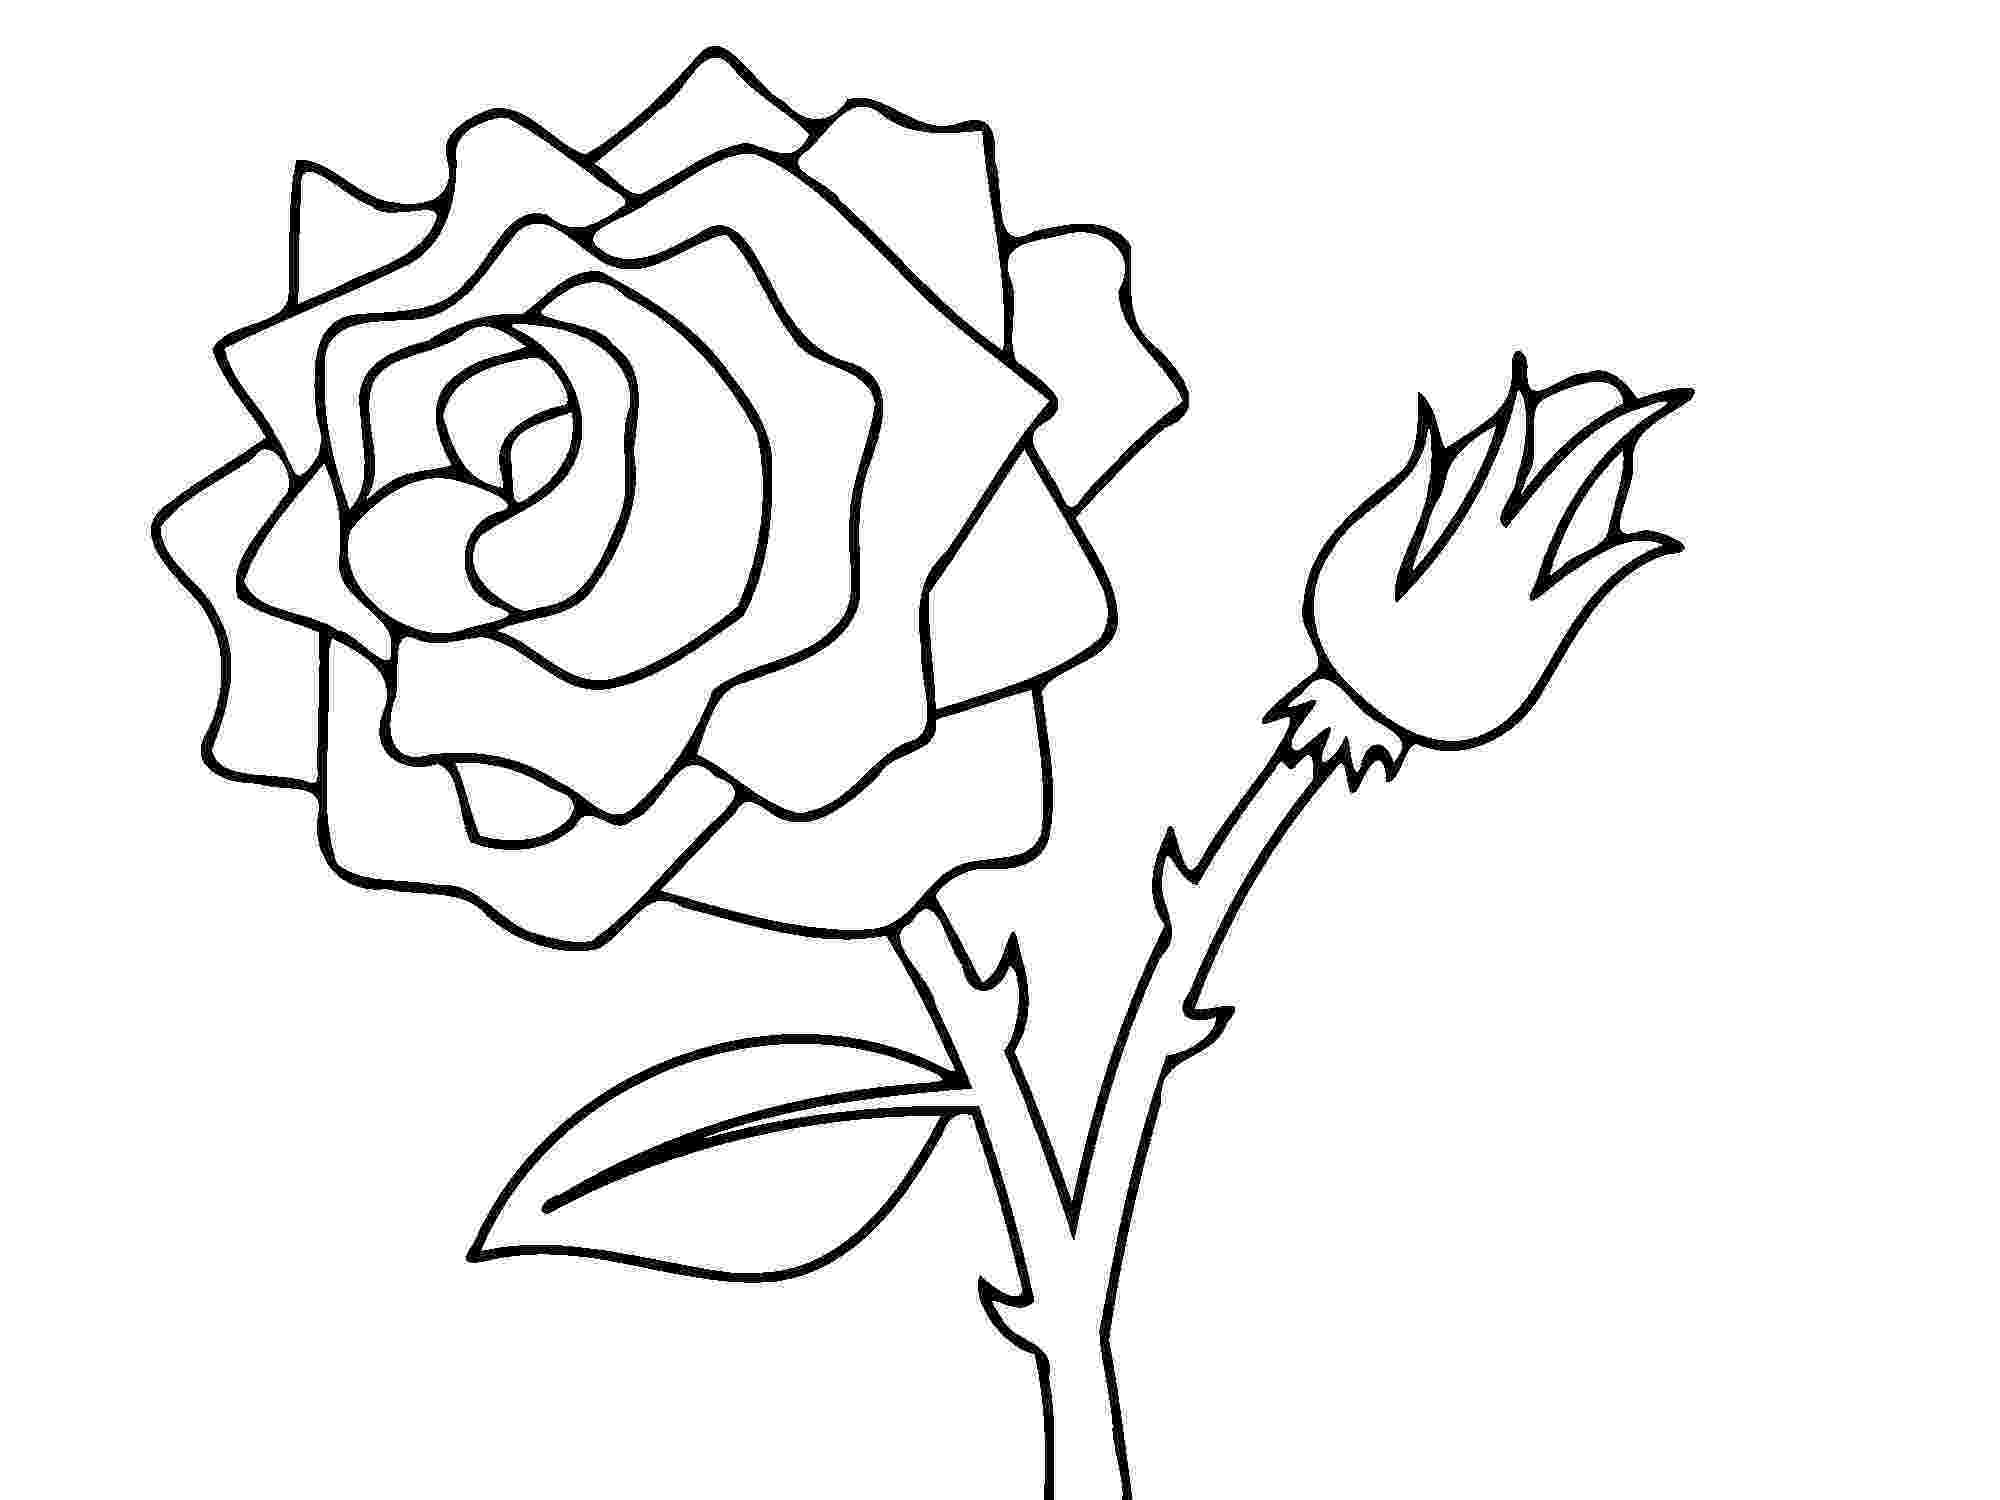 coloring roses free printable roses coloring pages for kids roses coloring 1 2